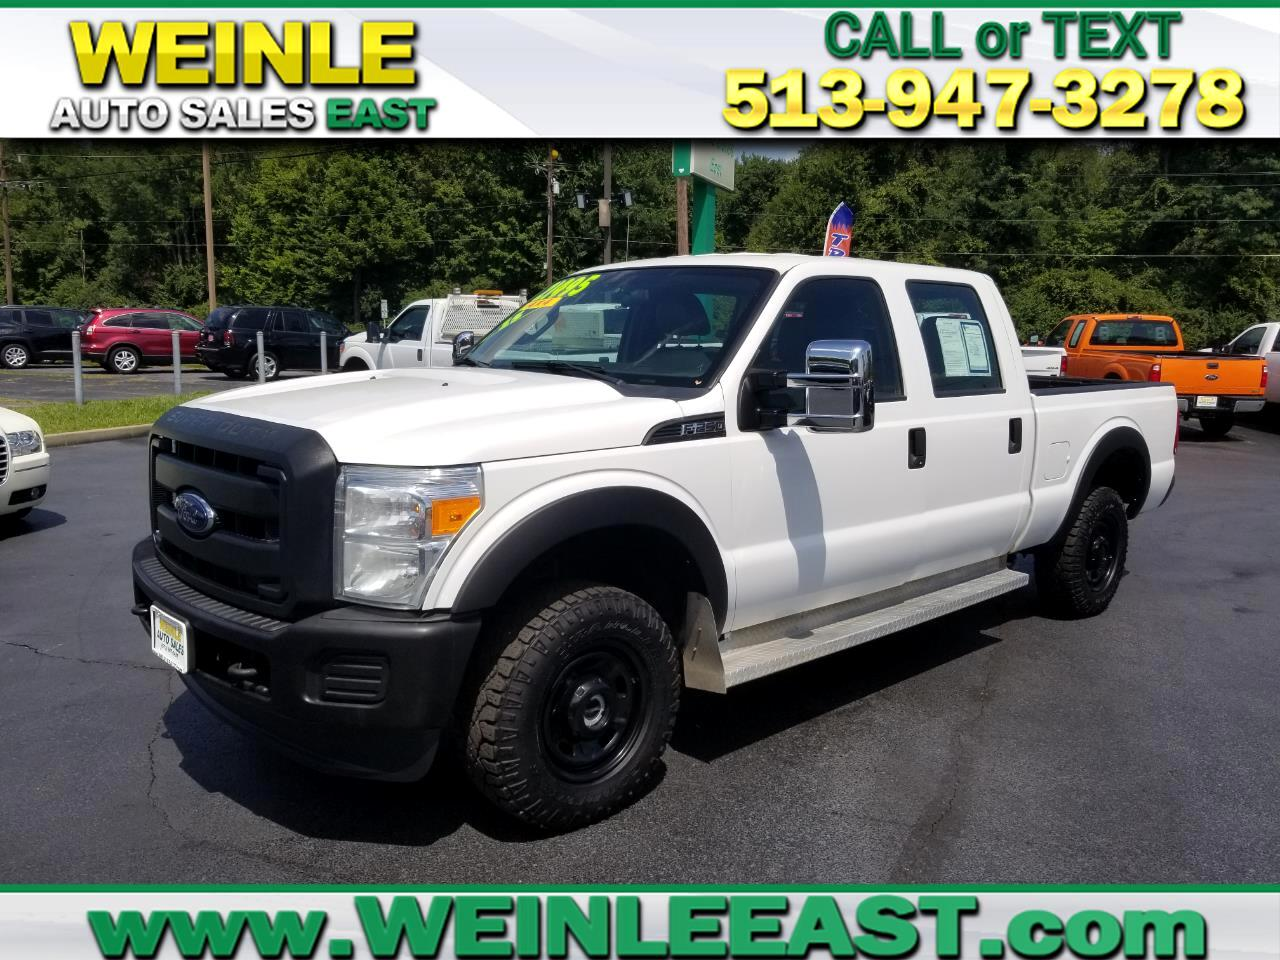 2015 Ford Super Duty F-250 SRW 4WD CREW CAB XL 6.2lt V8